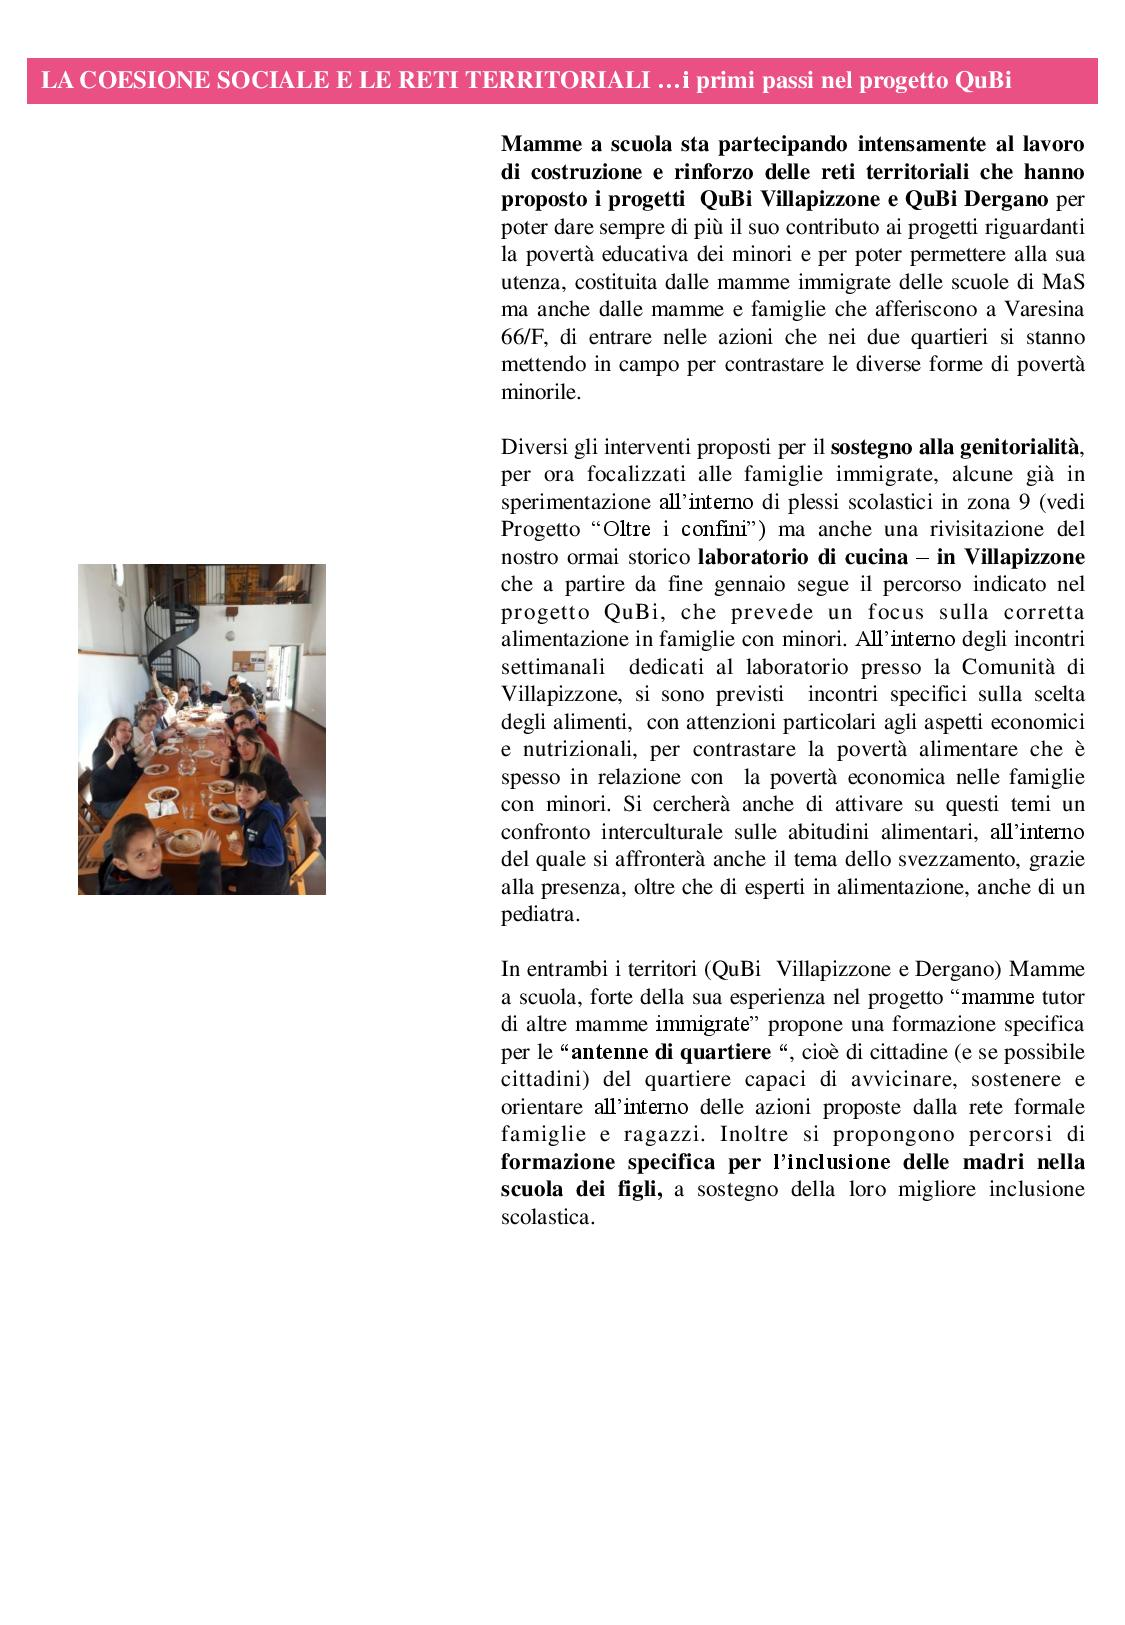 Newsletter_201903-page-006